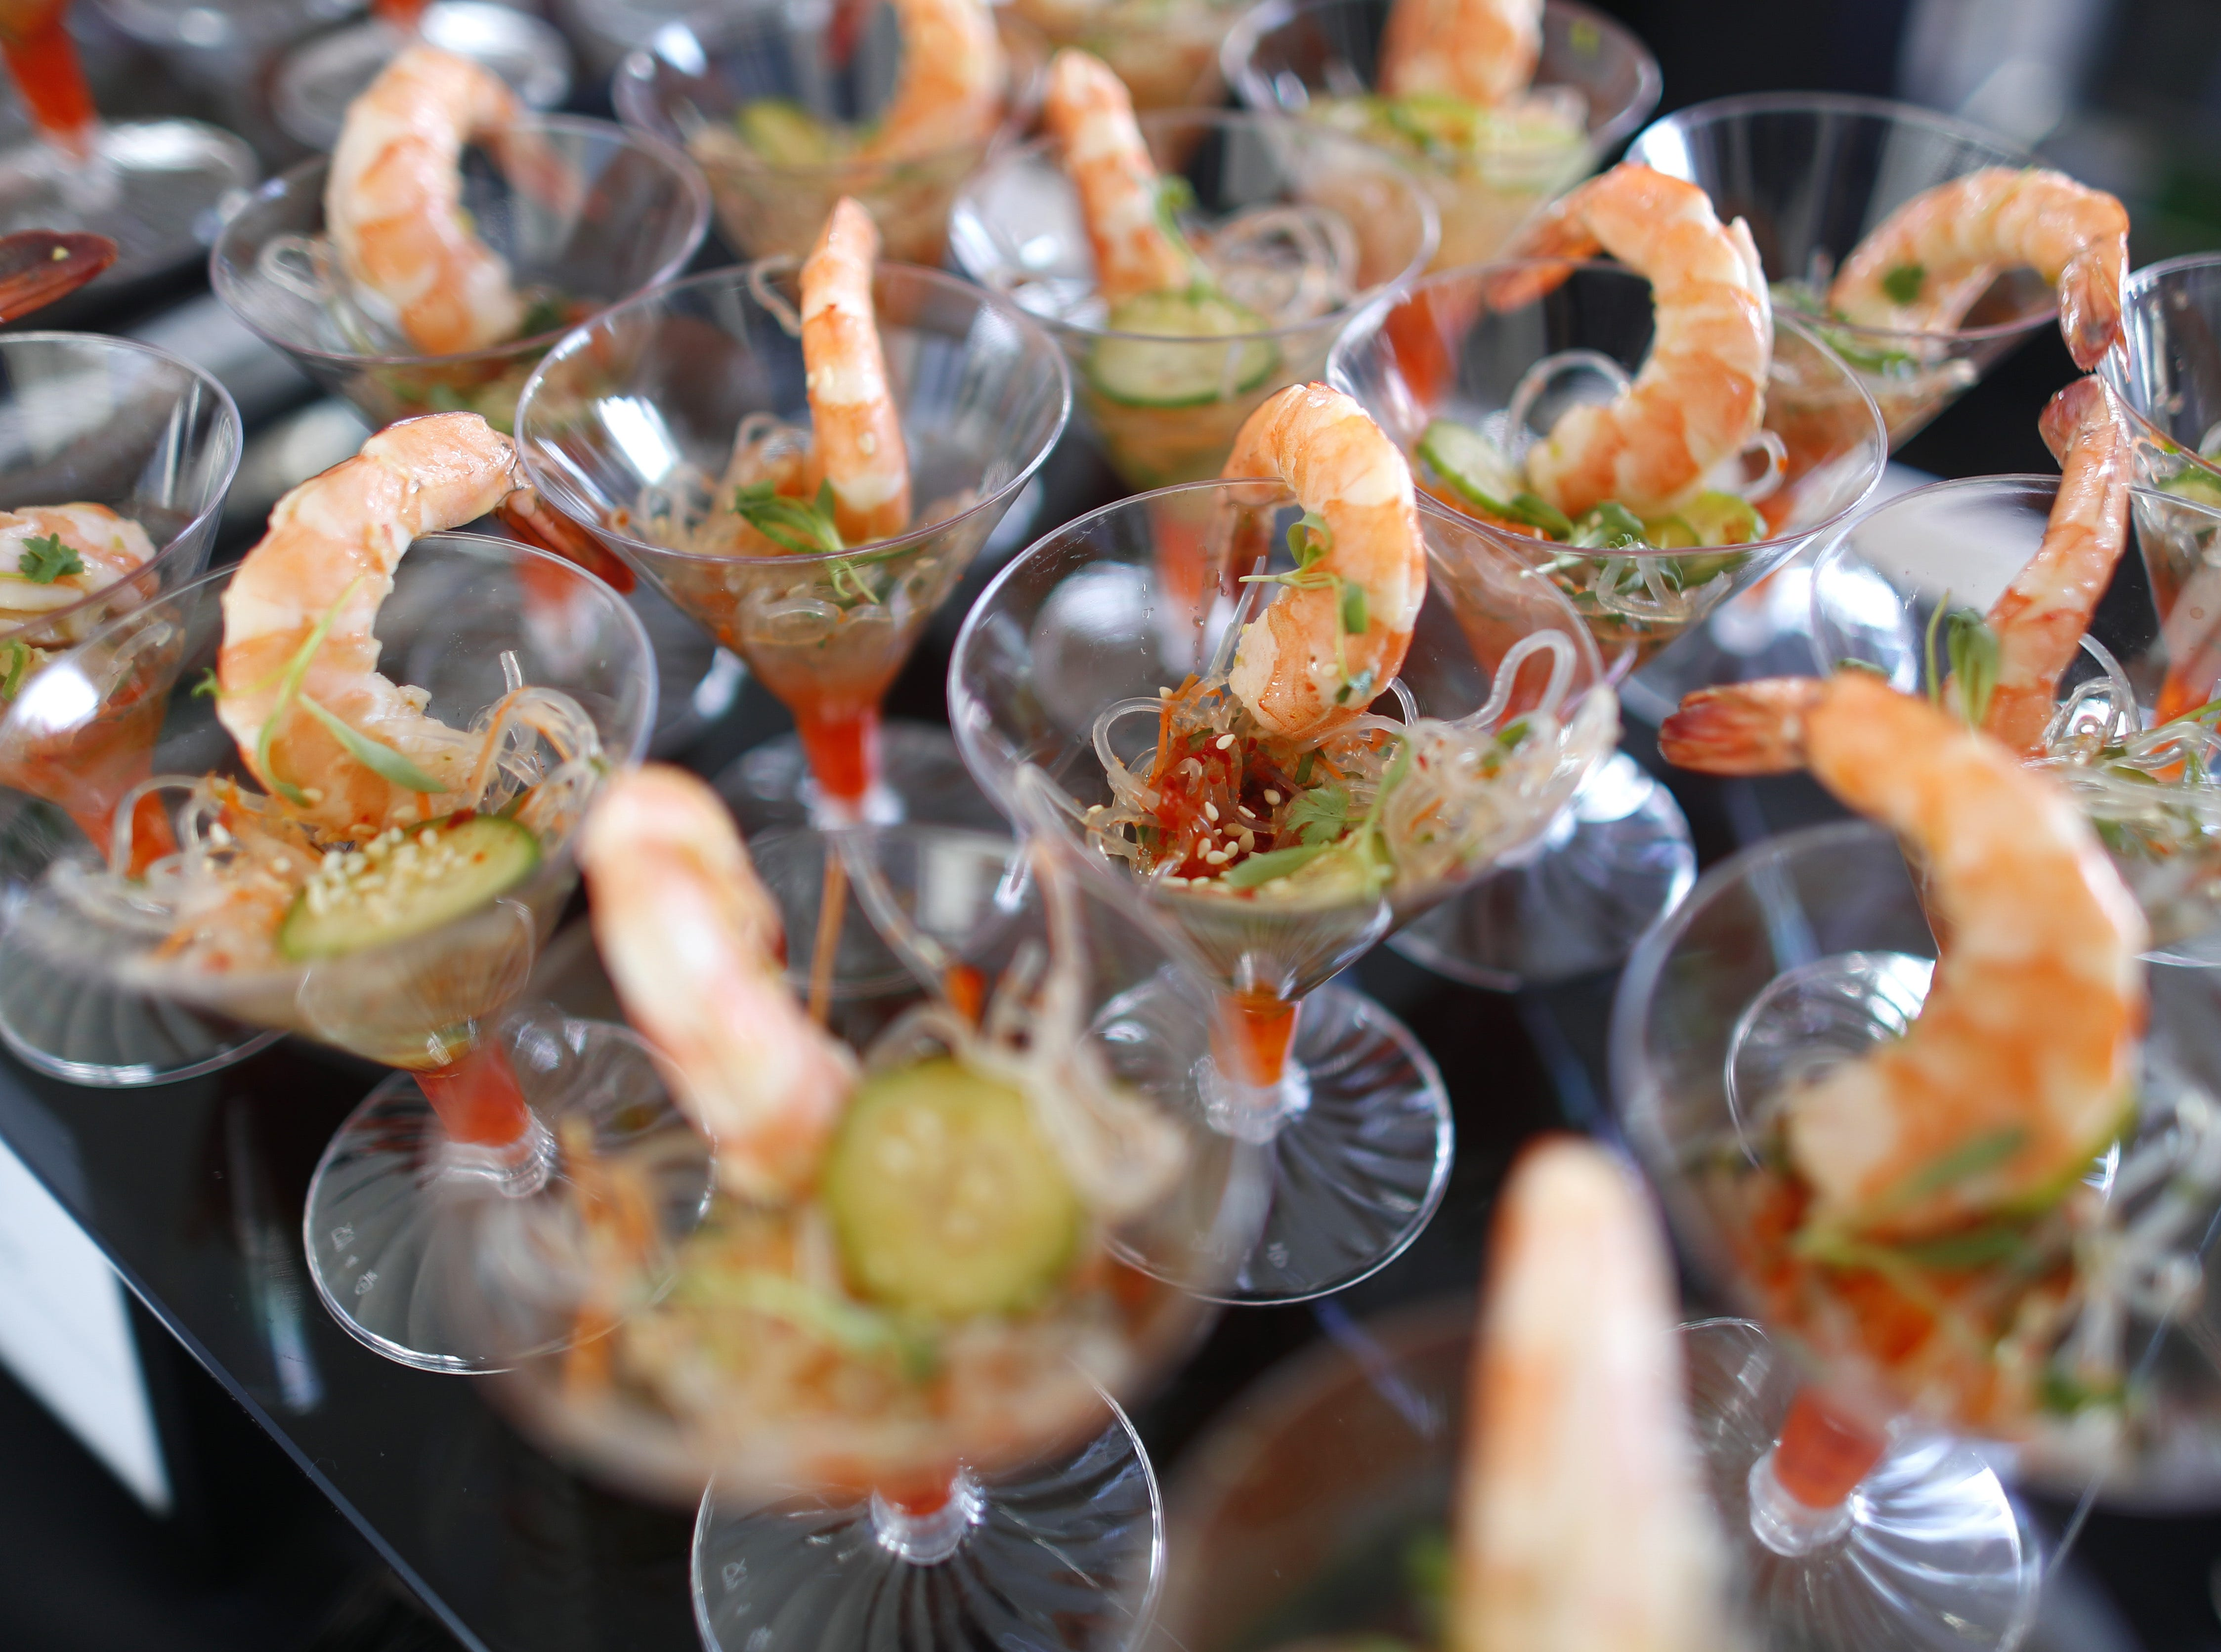 Wild shrimp ceviche from J&G Steakhouse at the Phoenician during the azcentral Wine & Food Experience at WestWorld of Scottsdale, Ariz. on Nov. 4, 2018.